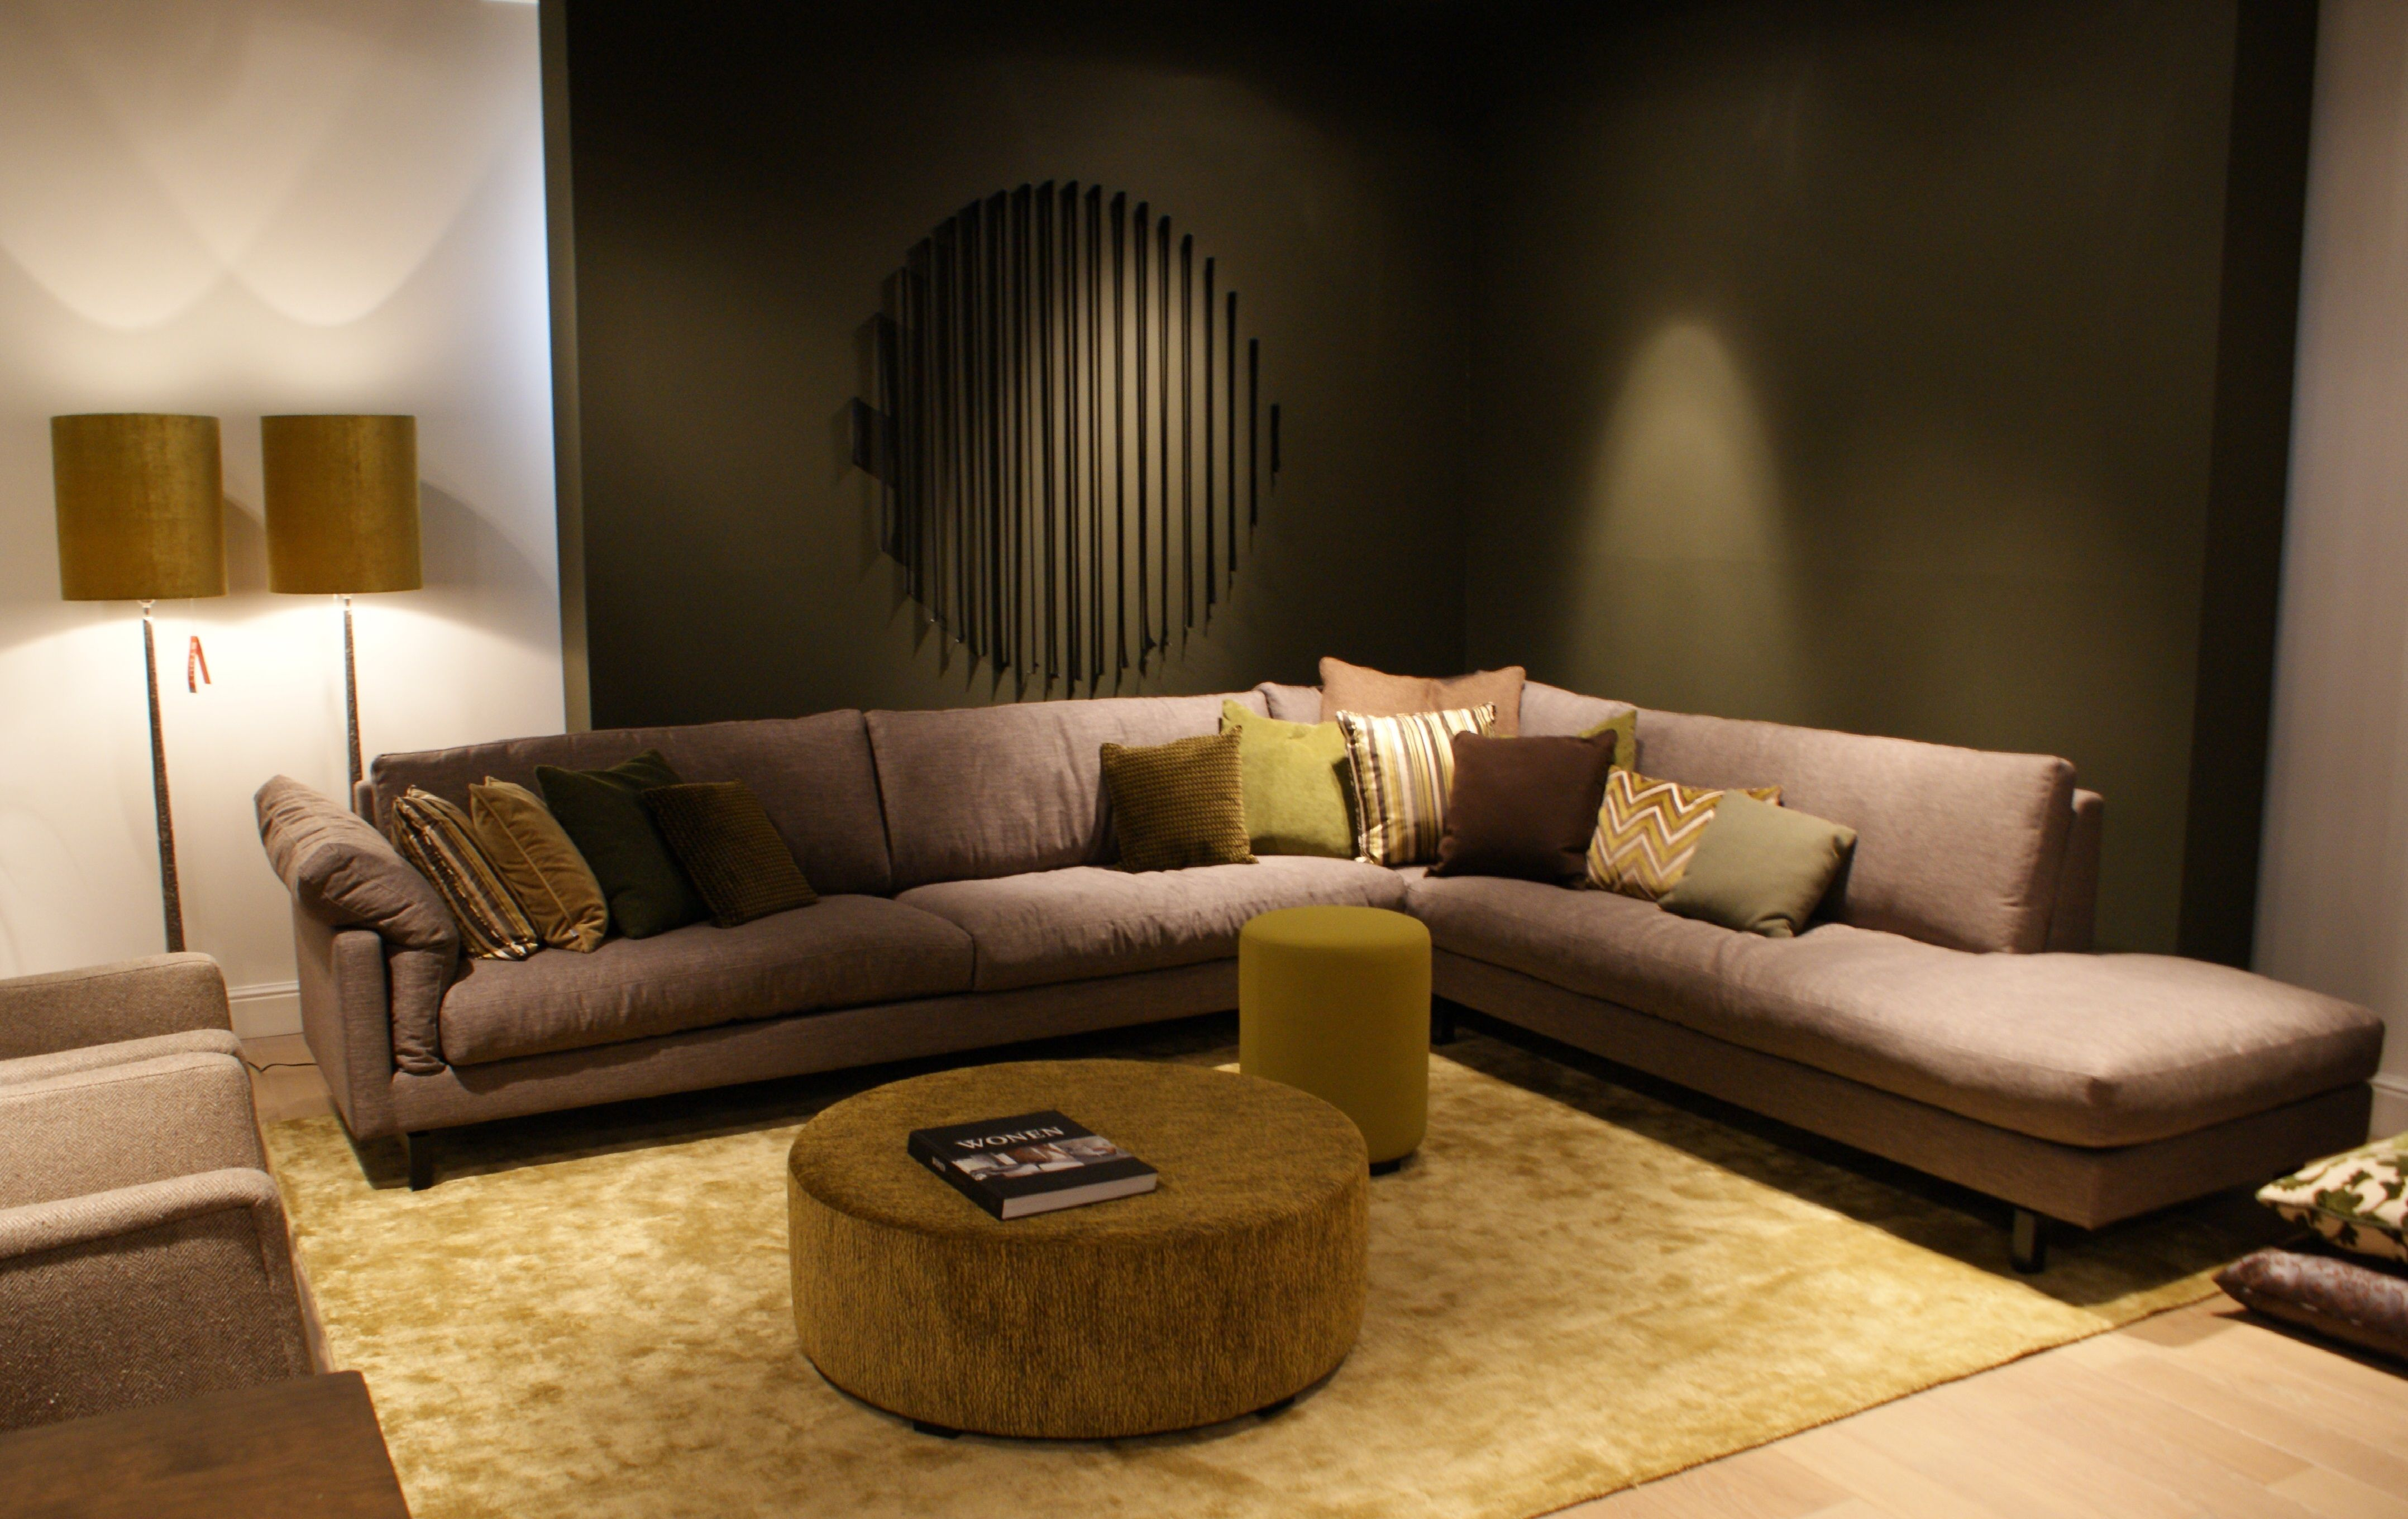 Otto Loungebank Baan Showroom L 2015 L Otto Bank Baan Showroom Waddinxveen 2015